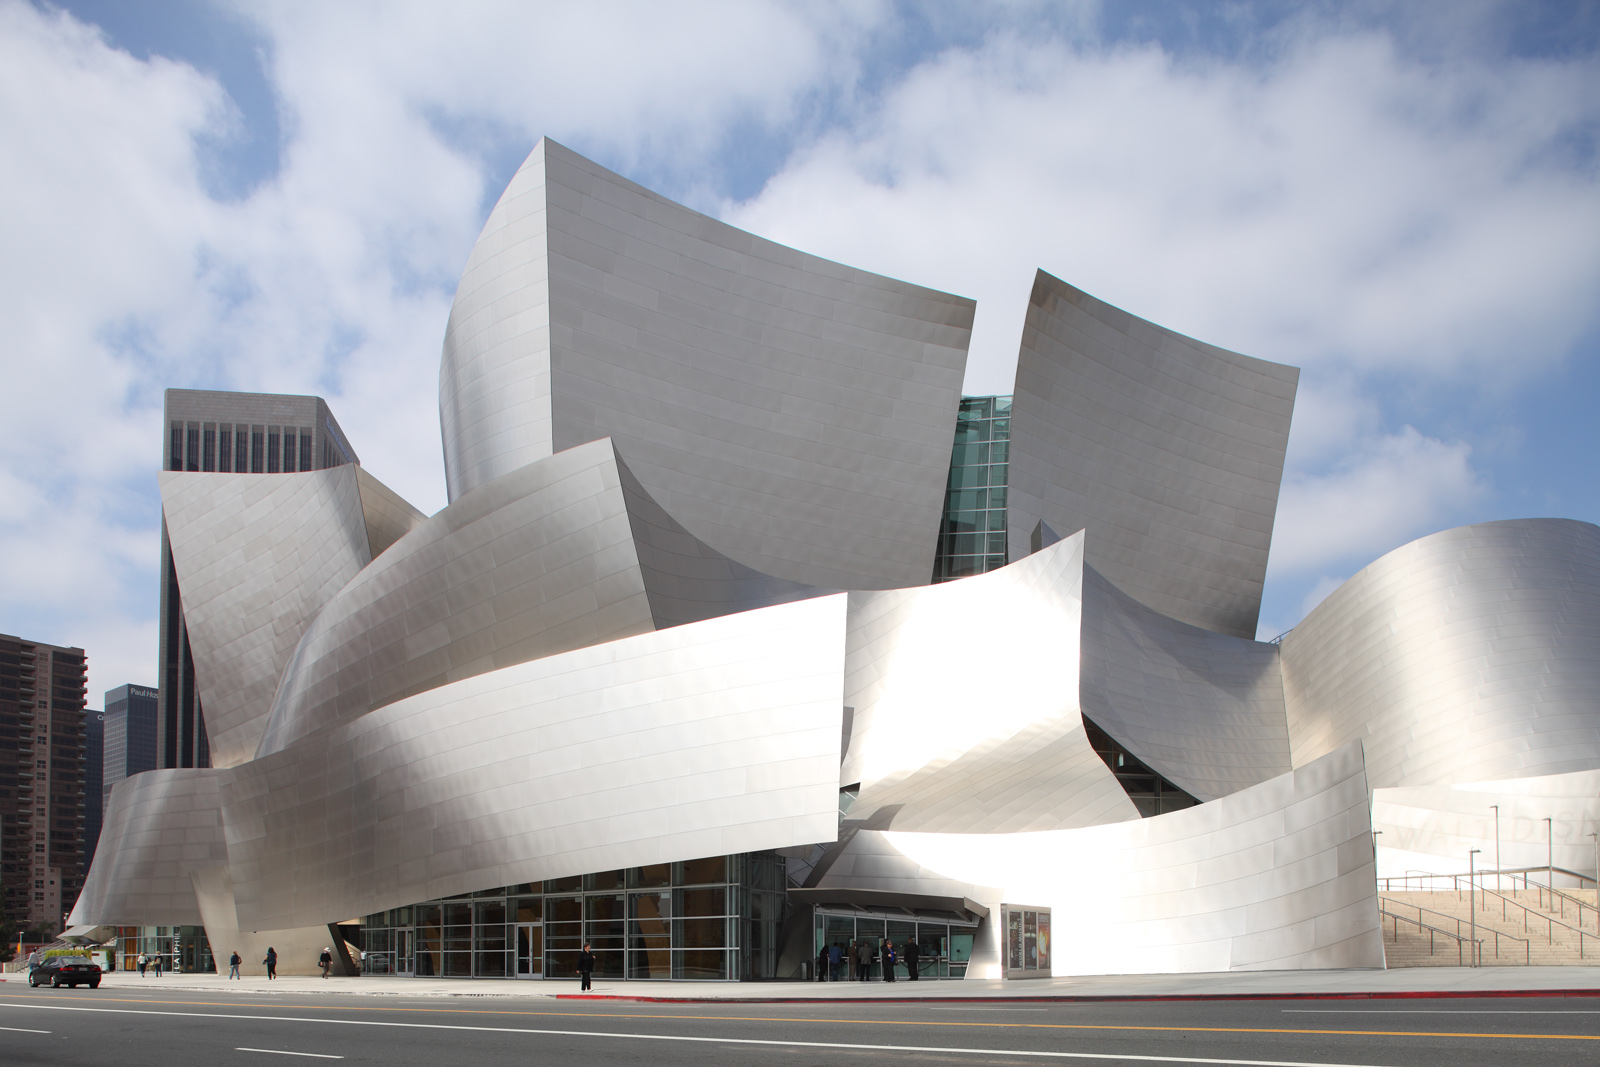 Disney Opera House, Los Angeles, California (USA) – architetto Frank Gejry – Film The Soloist (2009)